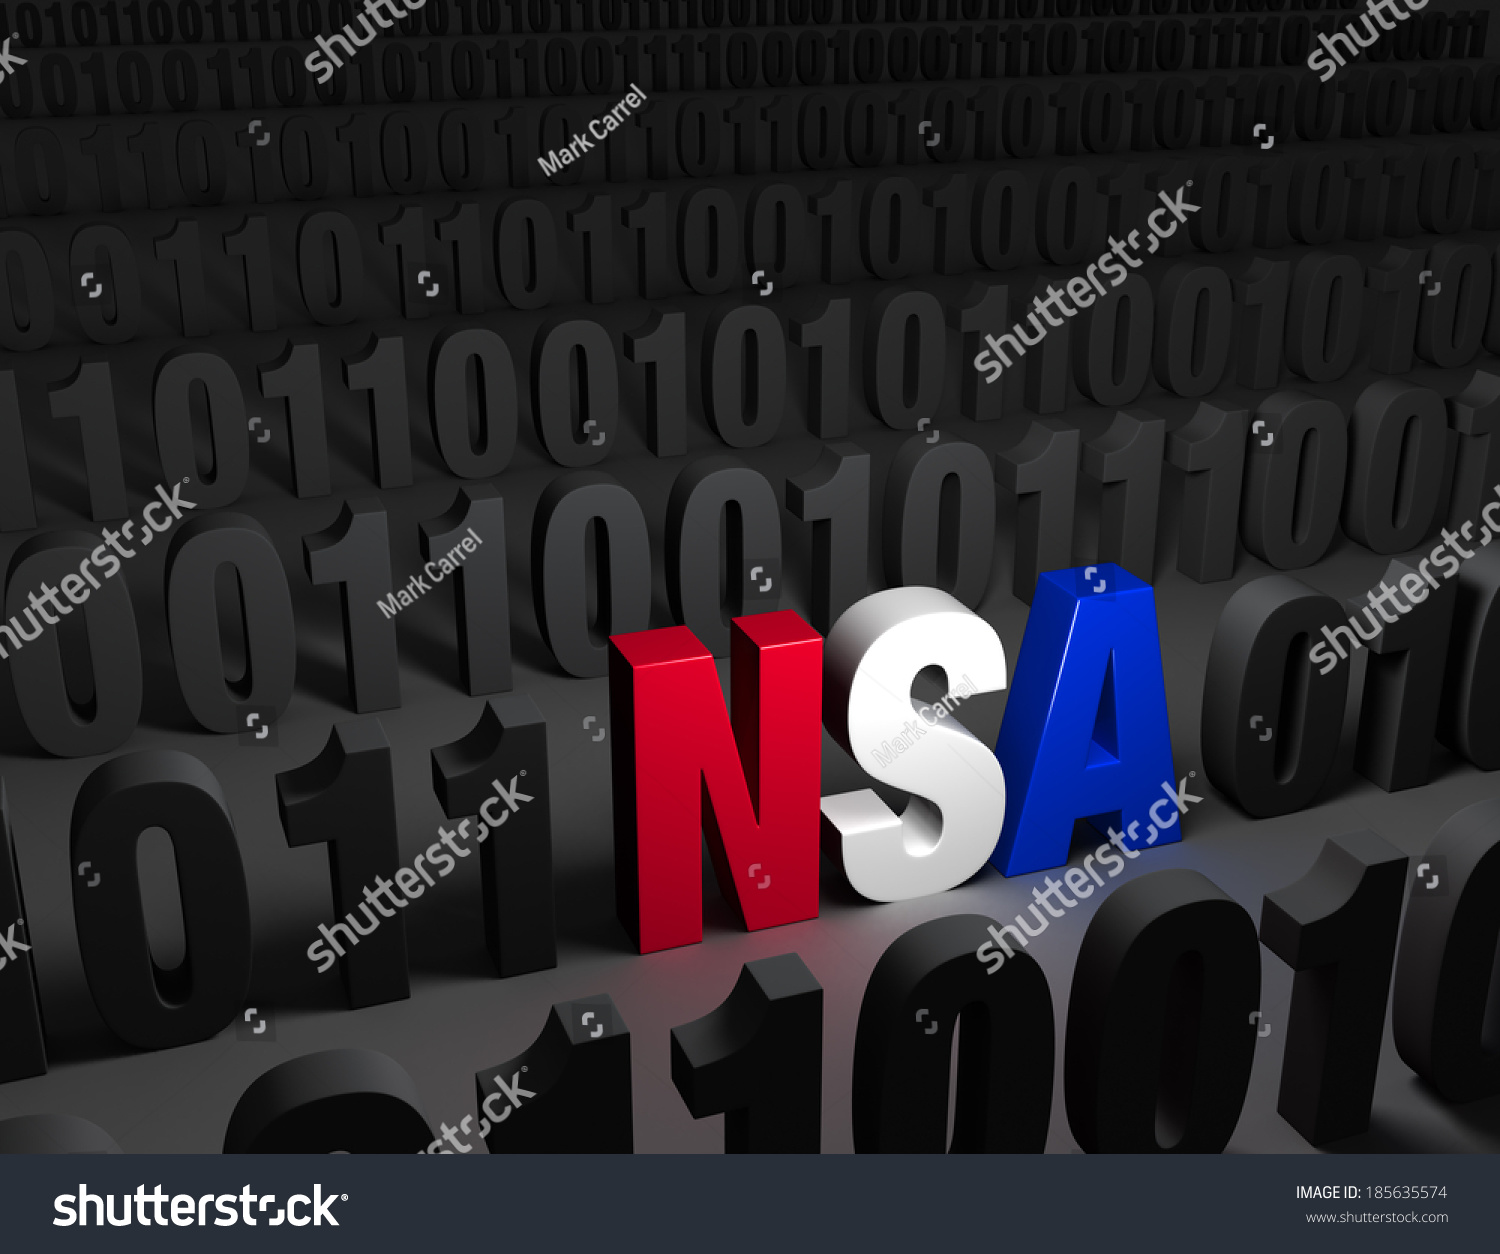 nsa stand for finder